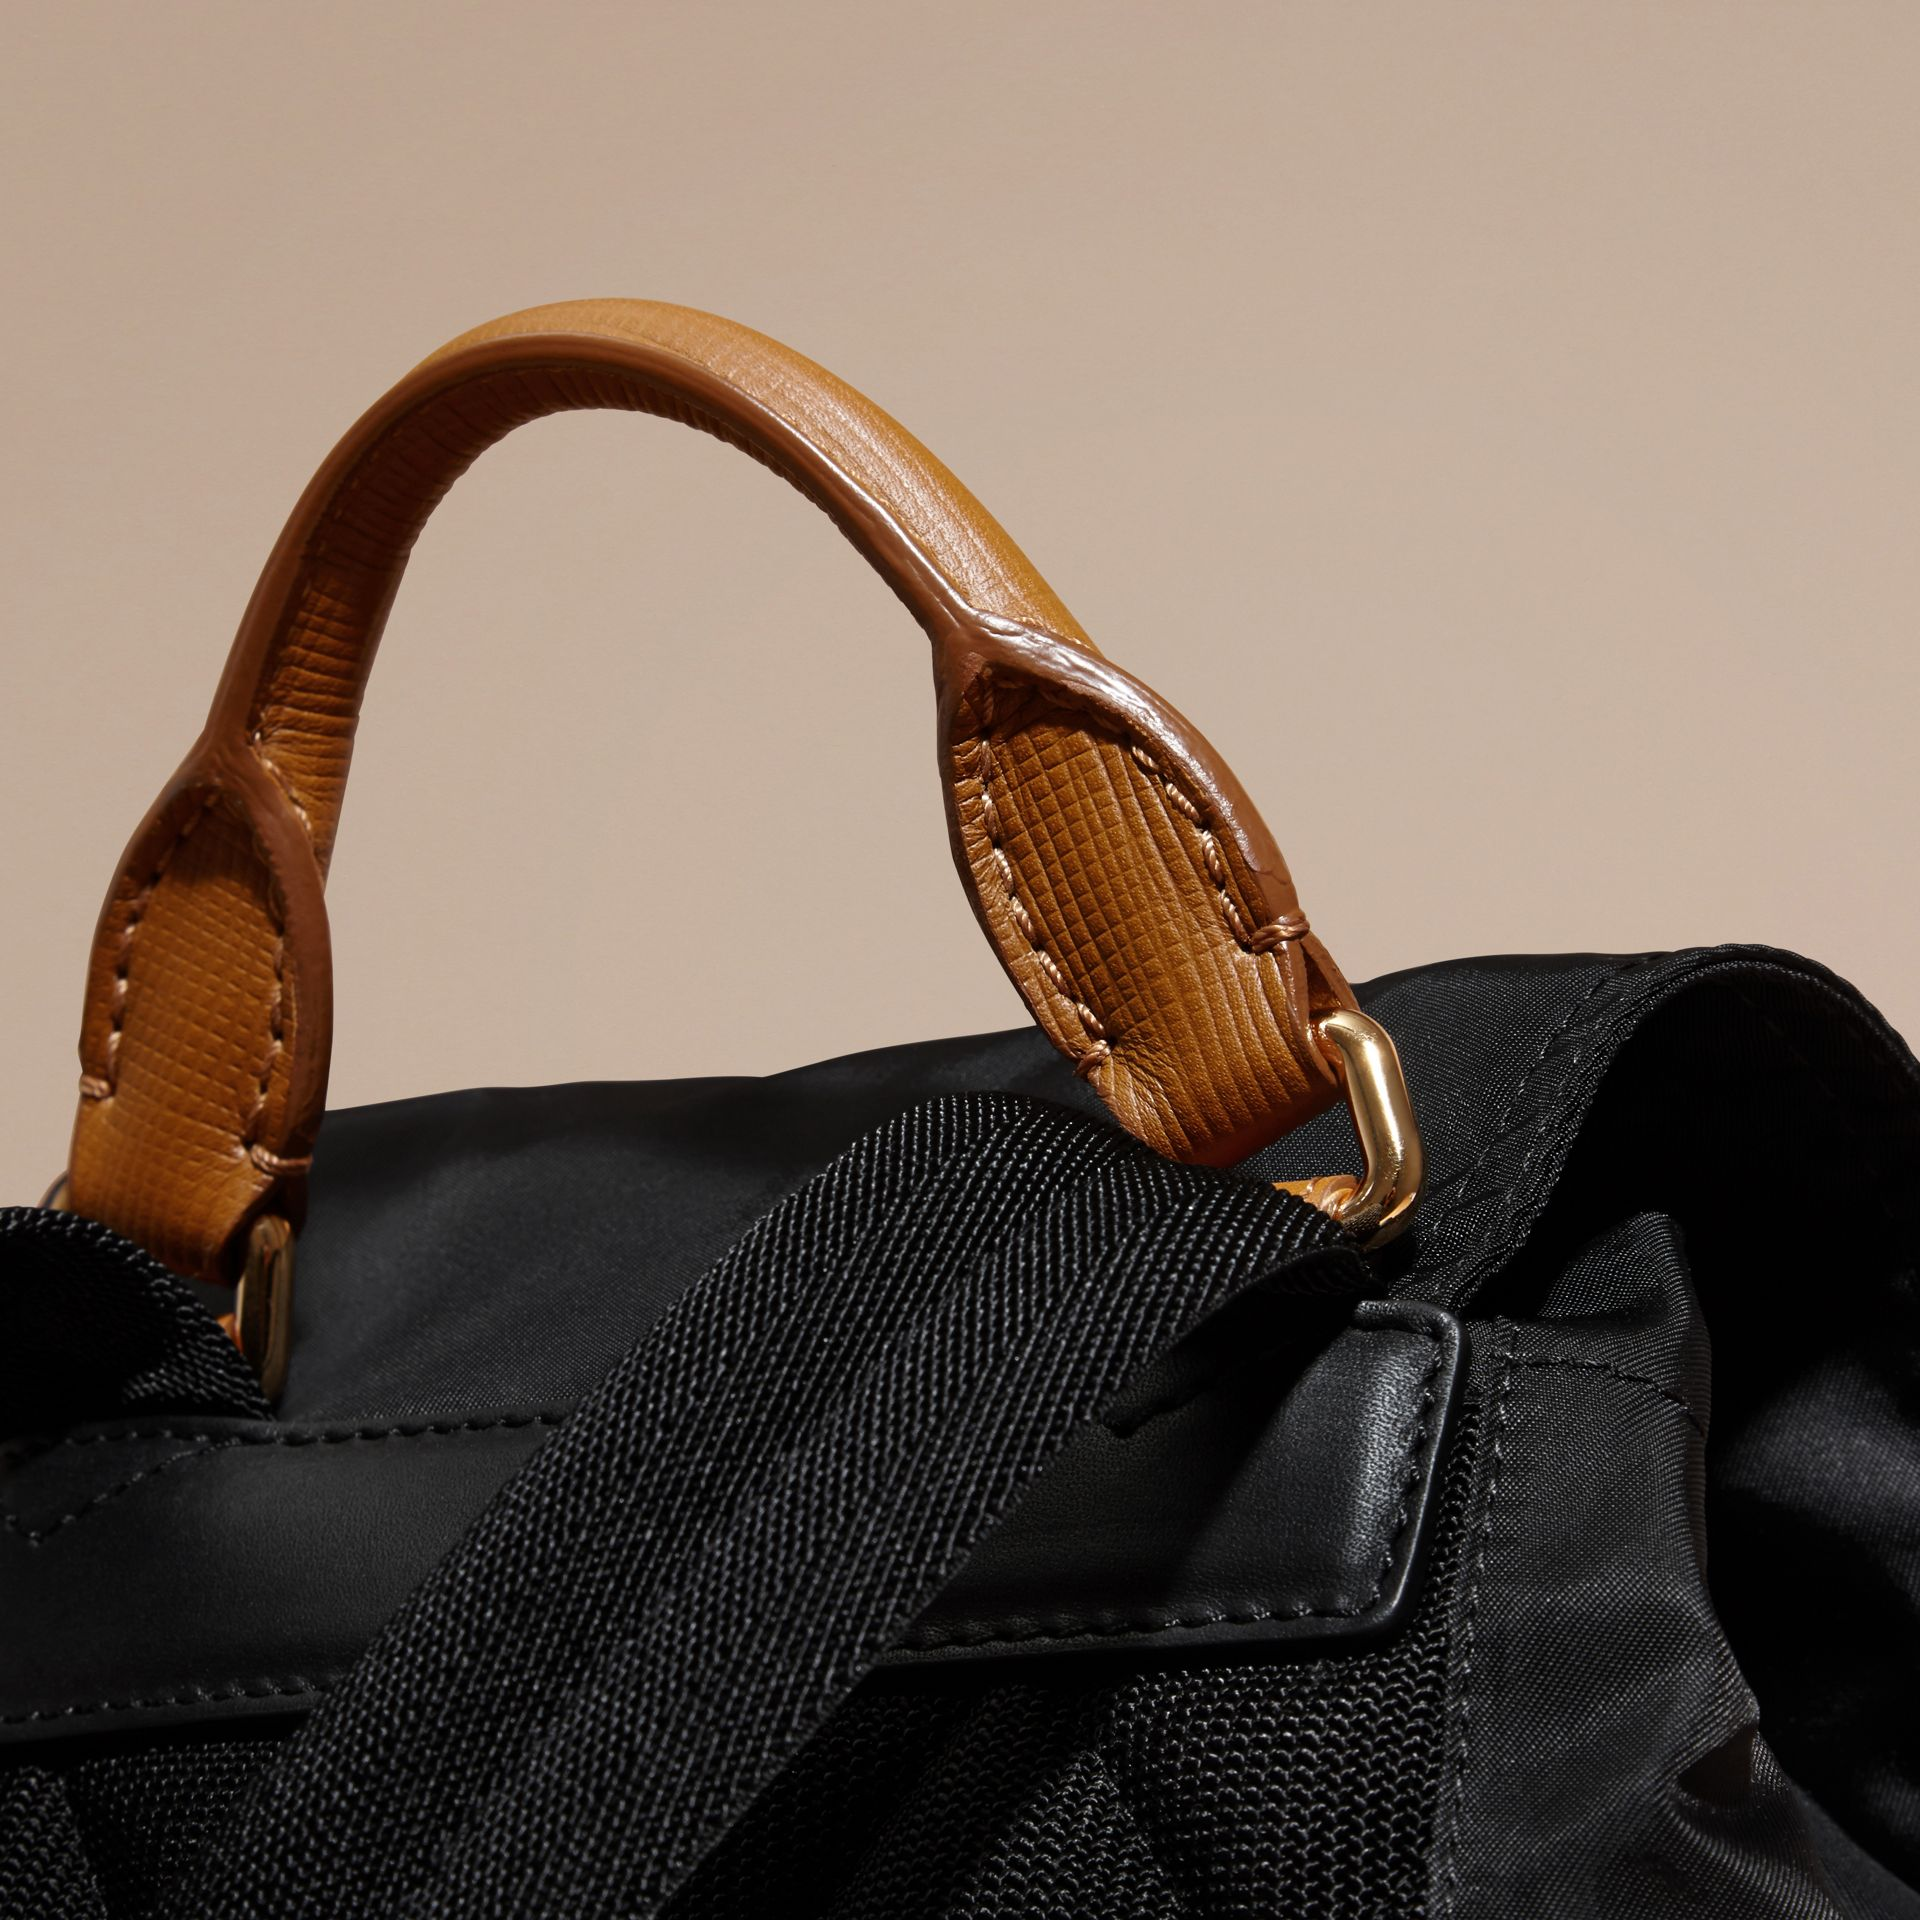 Sac The Rucksack medium en nylon technique et cuir Noir - photo de la galerie 5